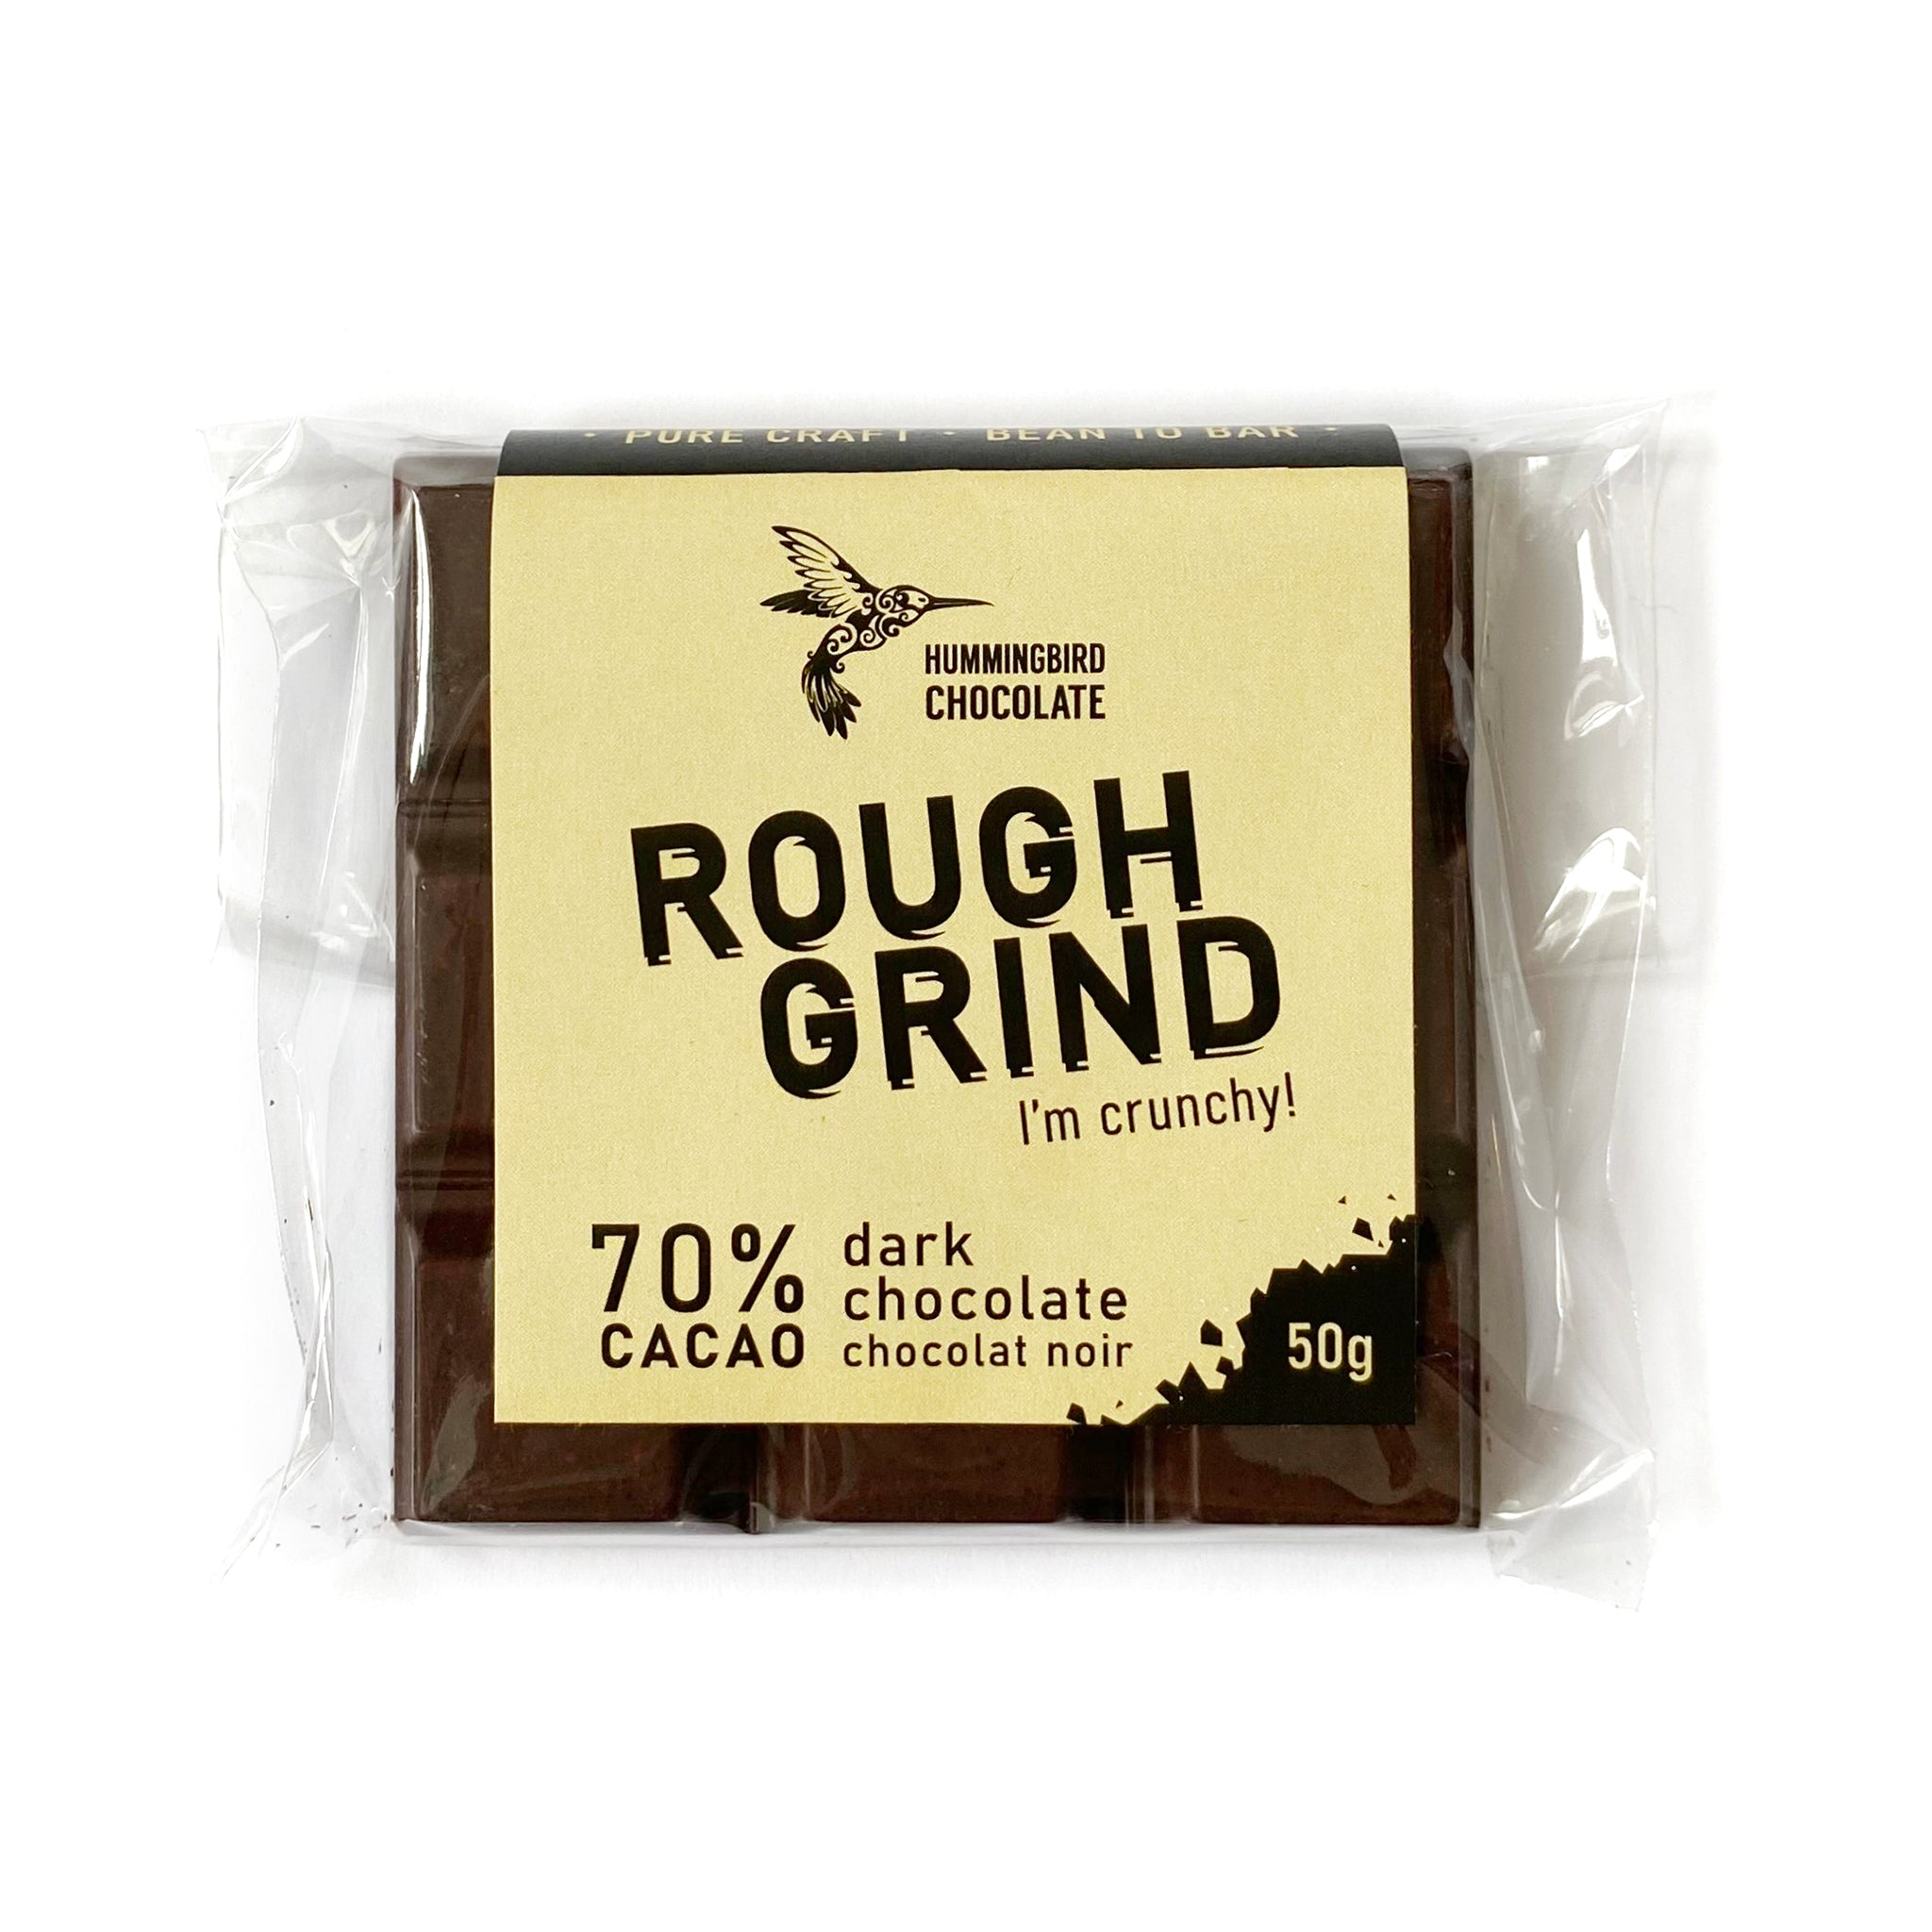 Hummingbird Chocolate Rough Grind. Crunchy, cookie-like textured 70% dark chocolate bar.